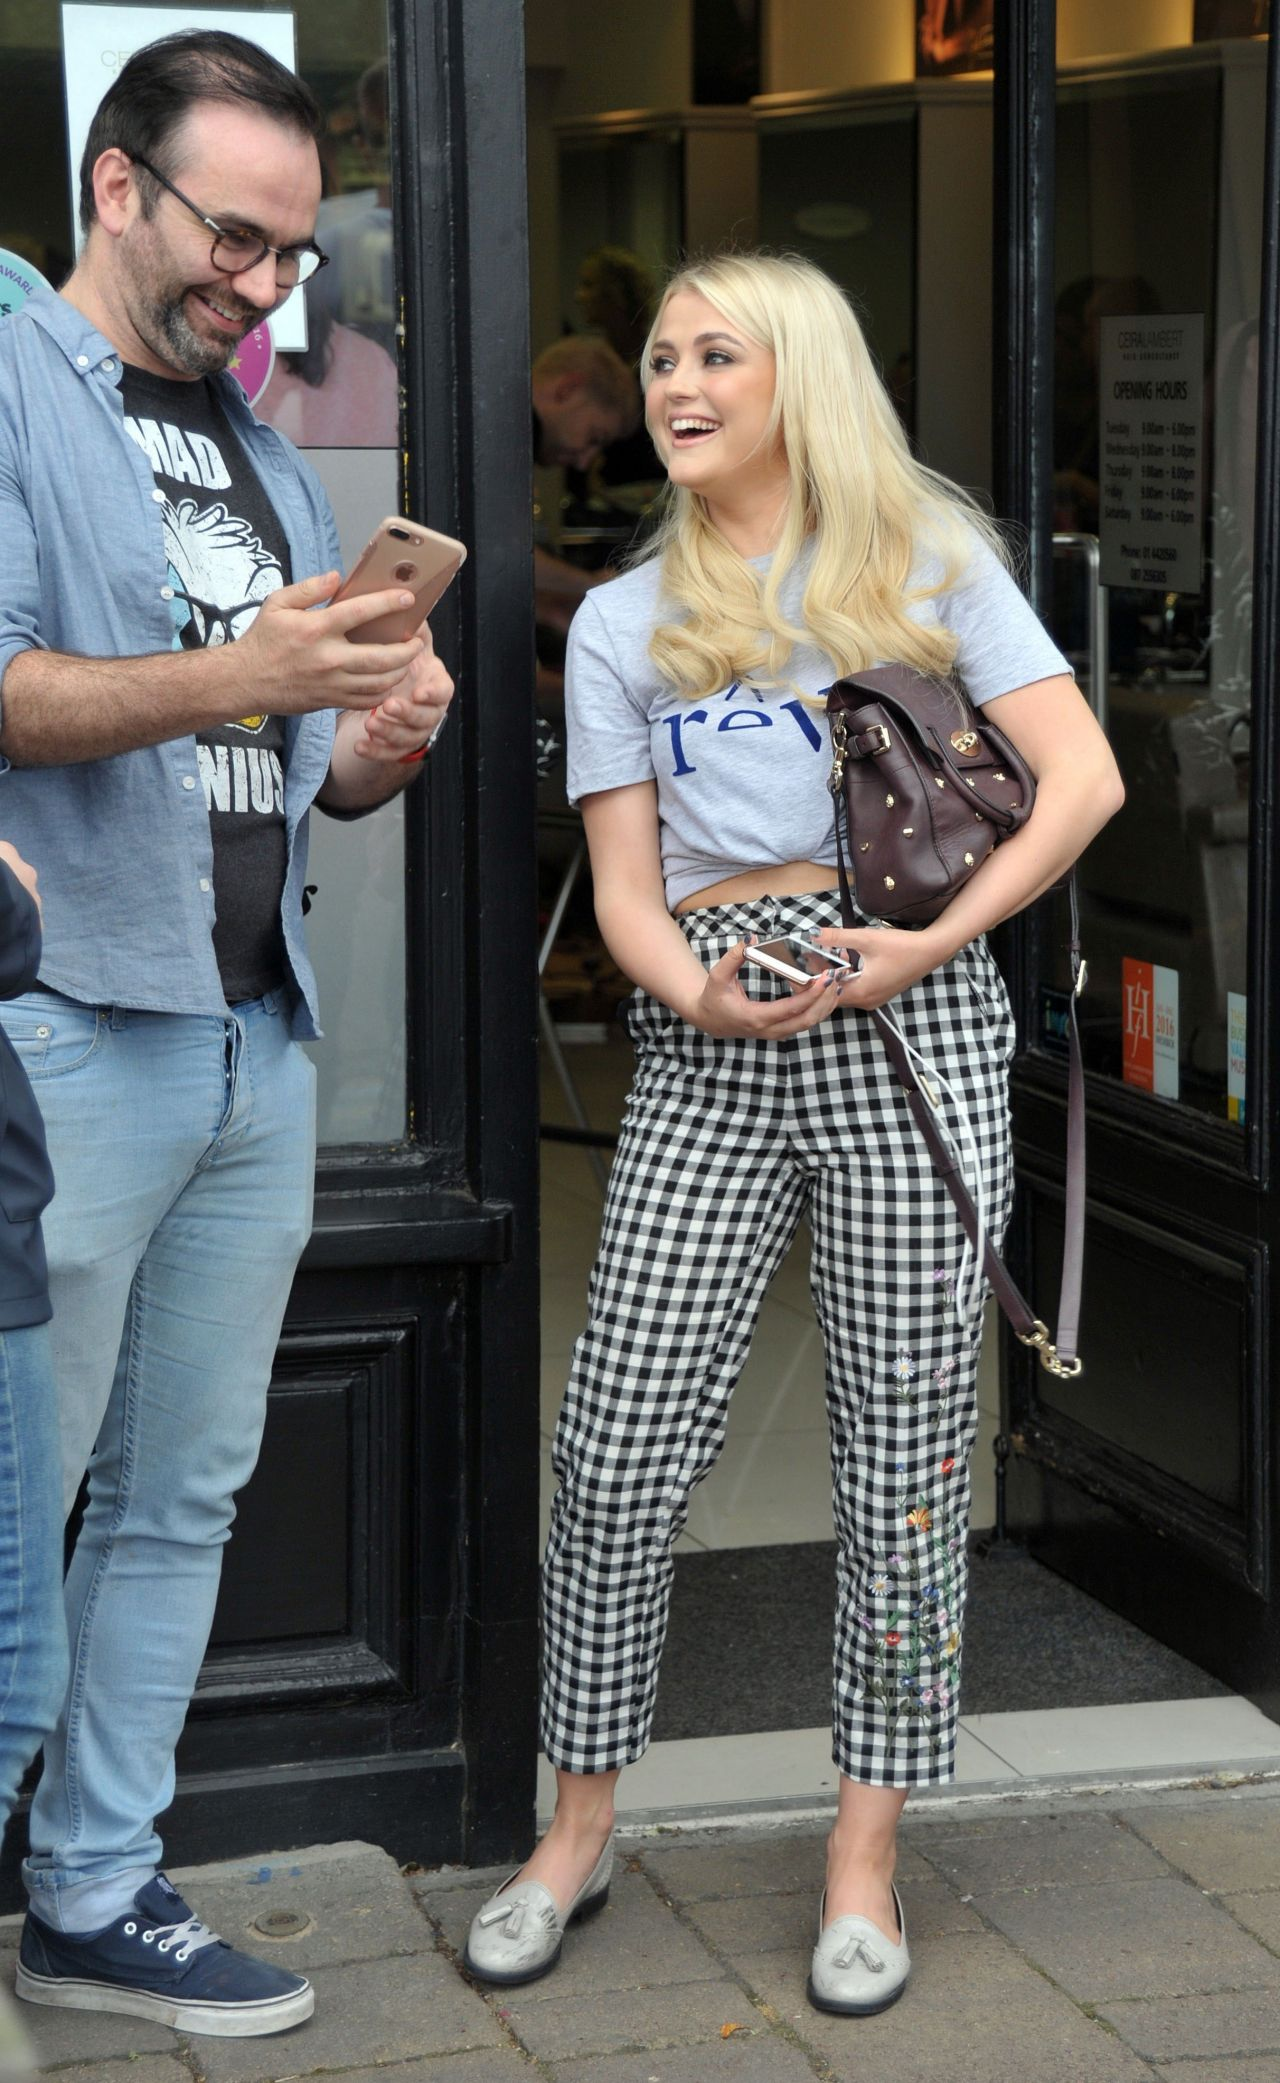 lucy-fallon-cute-style-at-ceira-lamberts-hair-salon-in-shankill-village-dublin-06-17-2017-5.jpg (1280×2083)